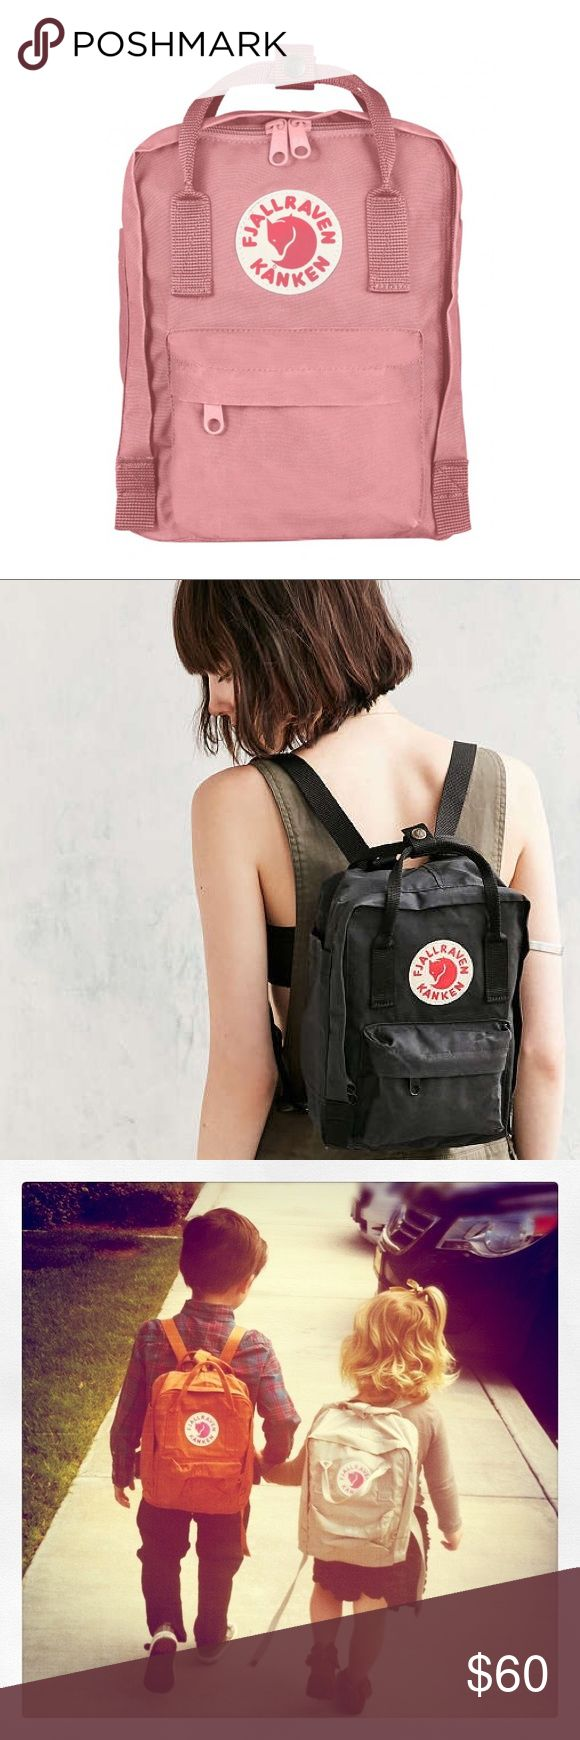 Fjallraven Kanken mini book bag Kånken backpack in little format with long shoulder straps that can be adjusted to fit both children and adults. Removable seat pad.  Perfect baby style 90's mini book bag. Fjallraven Bags Backpacks